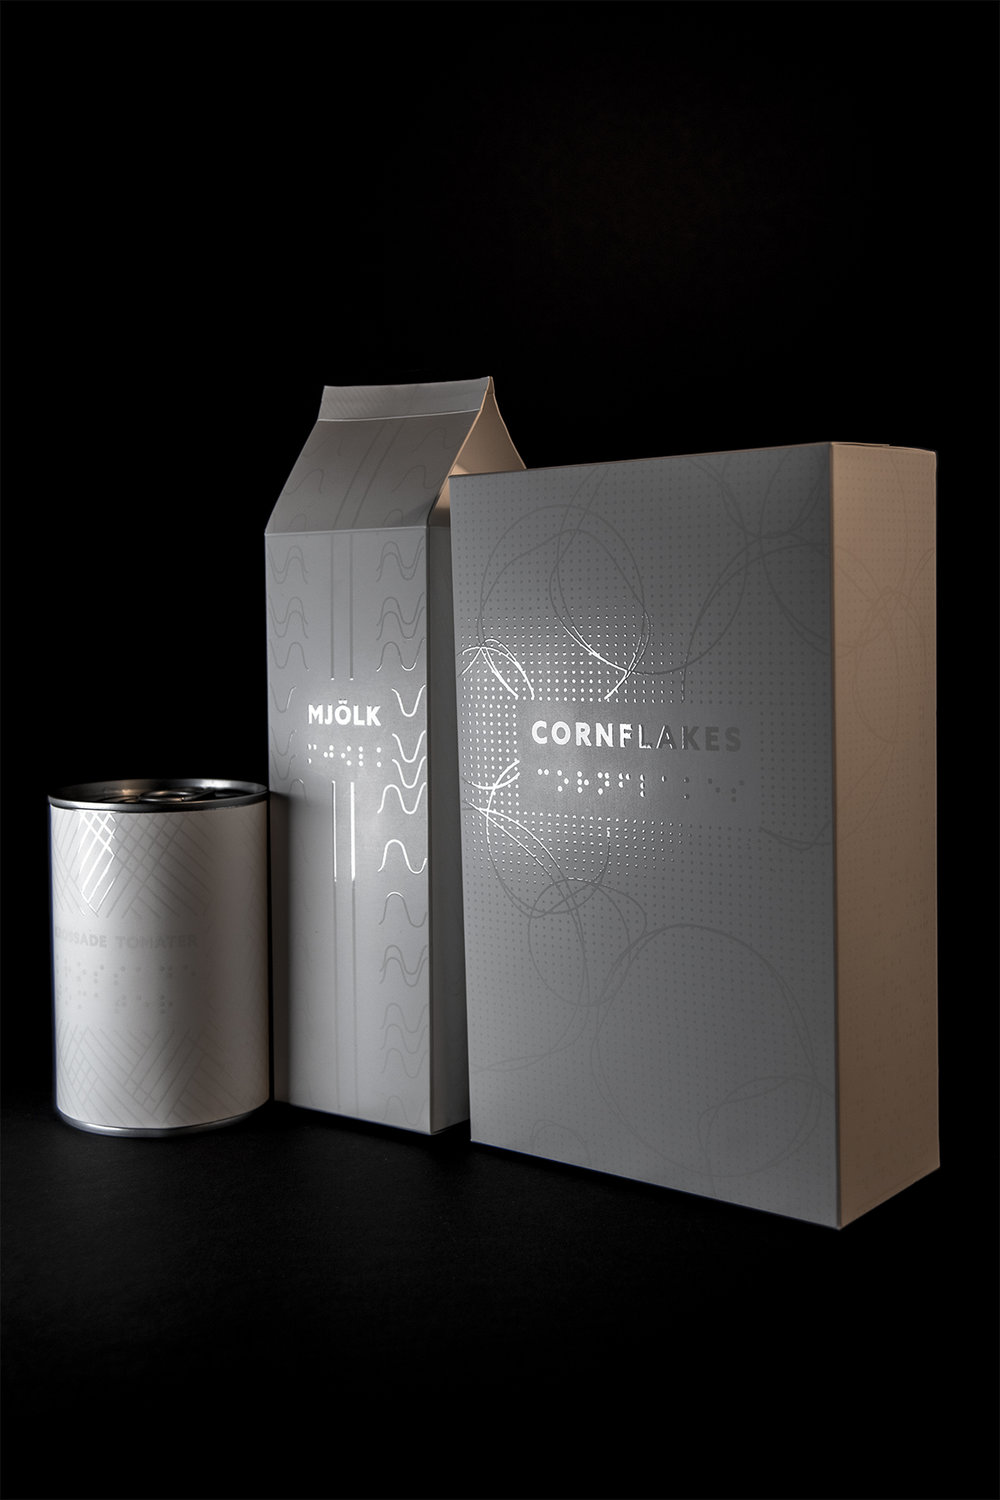 Color Me Blind Is A Project That Explores Packaging For